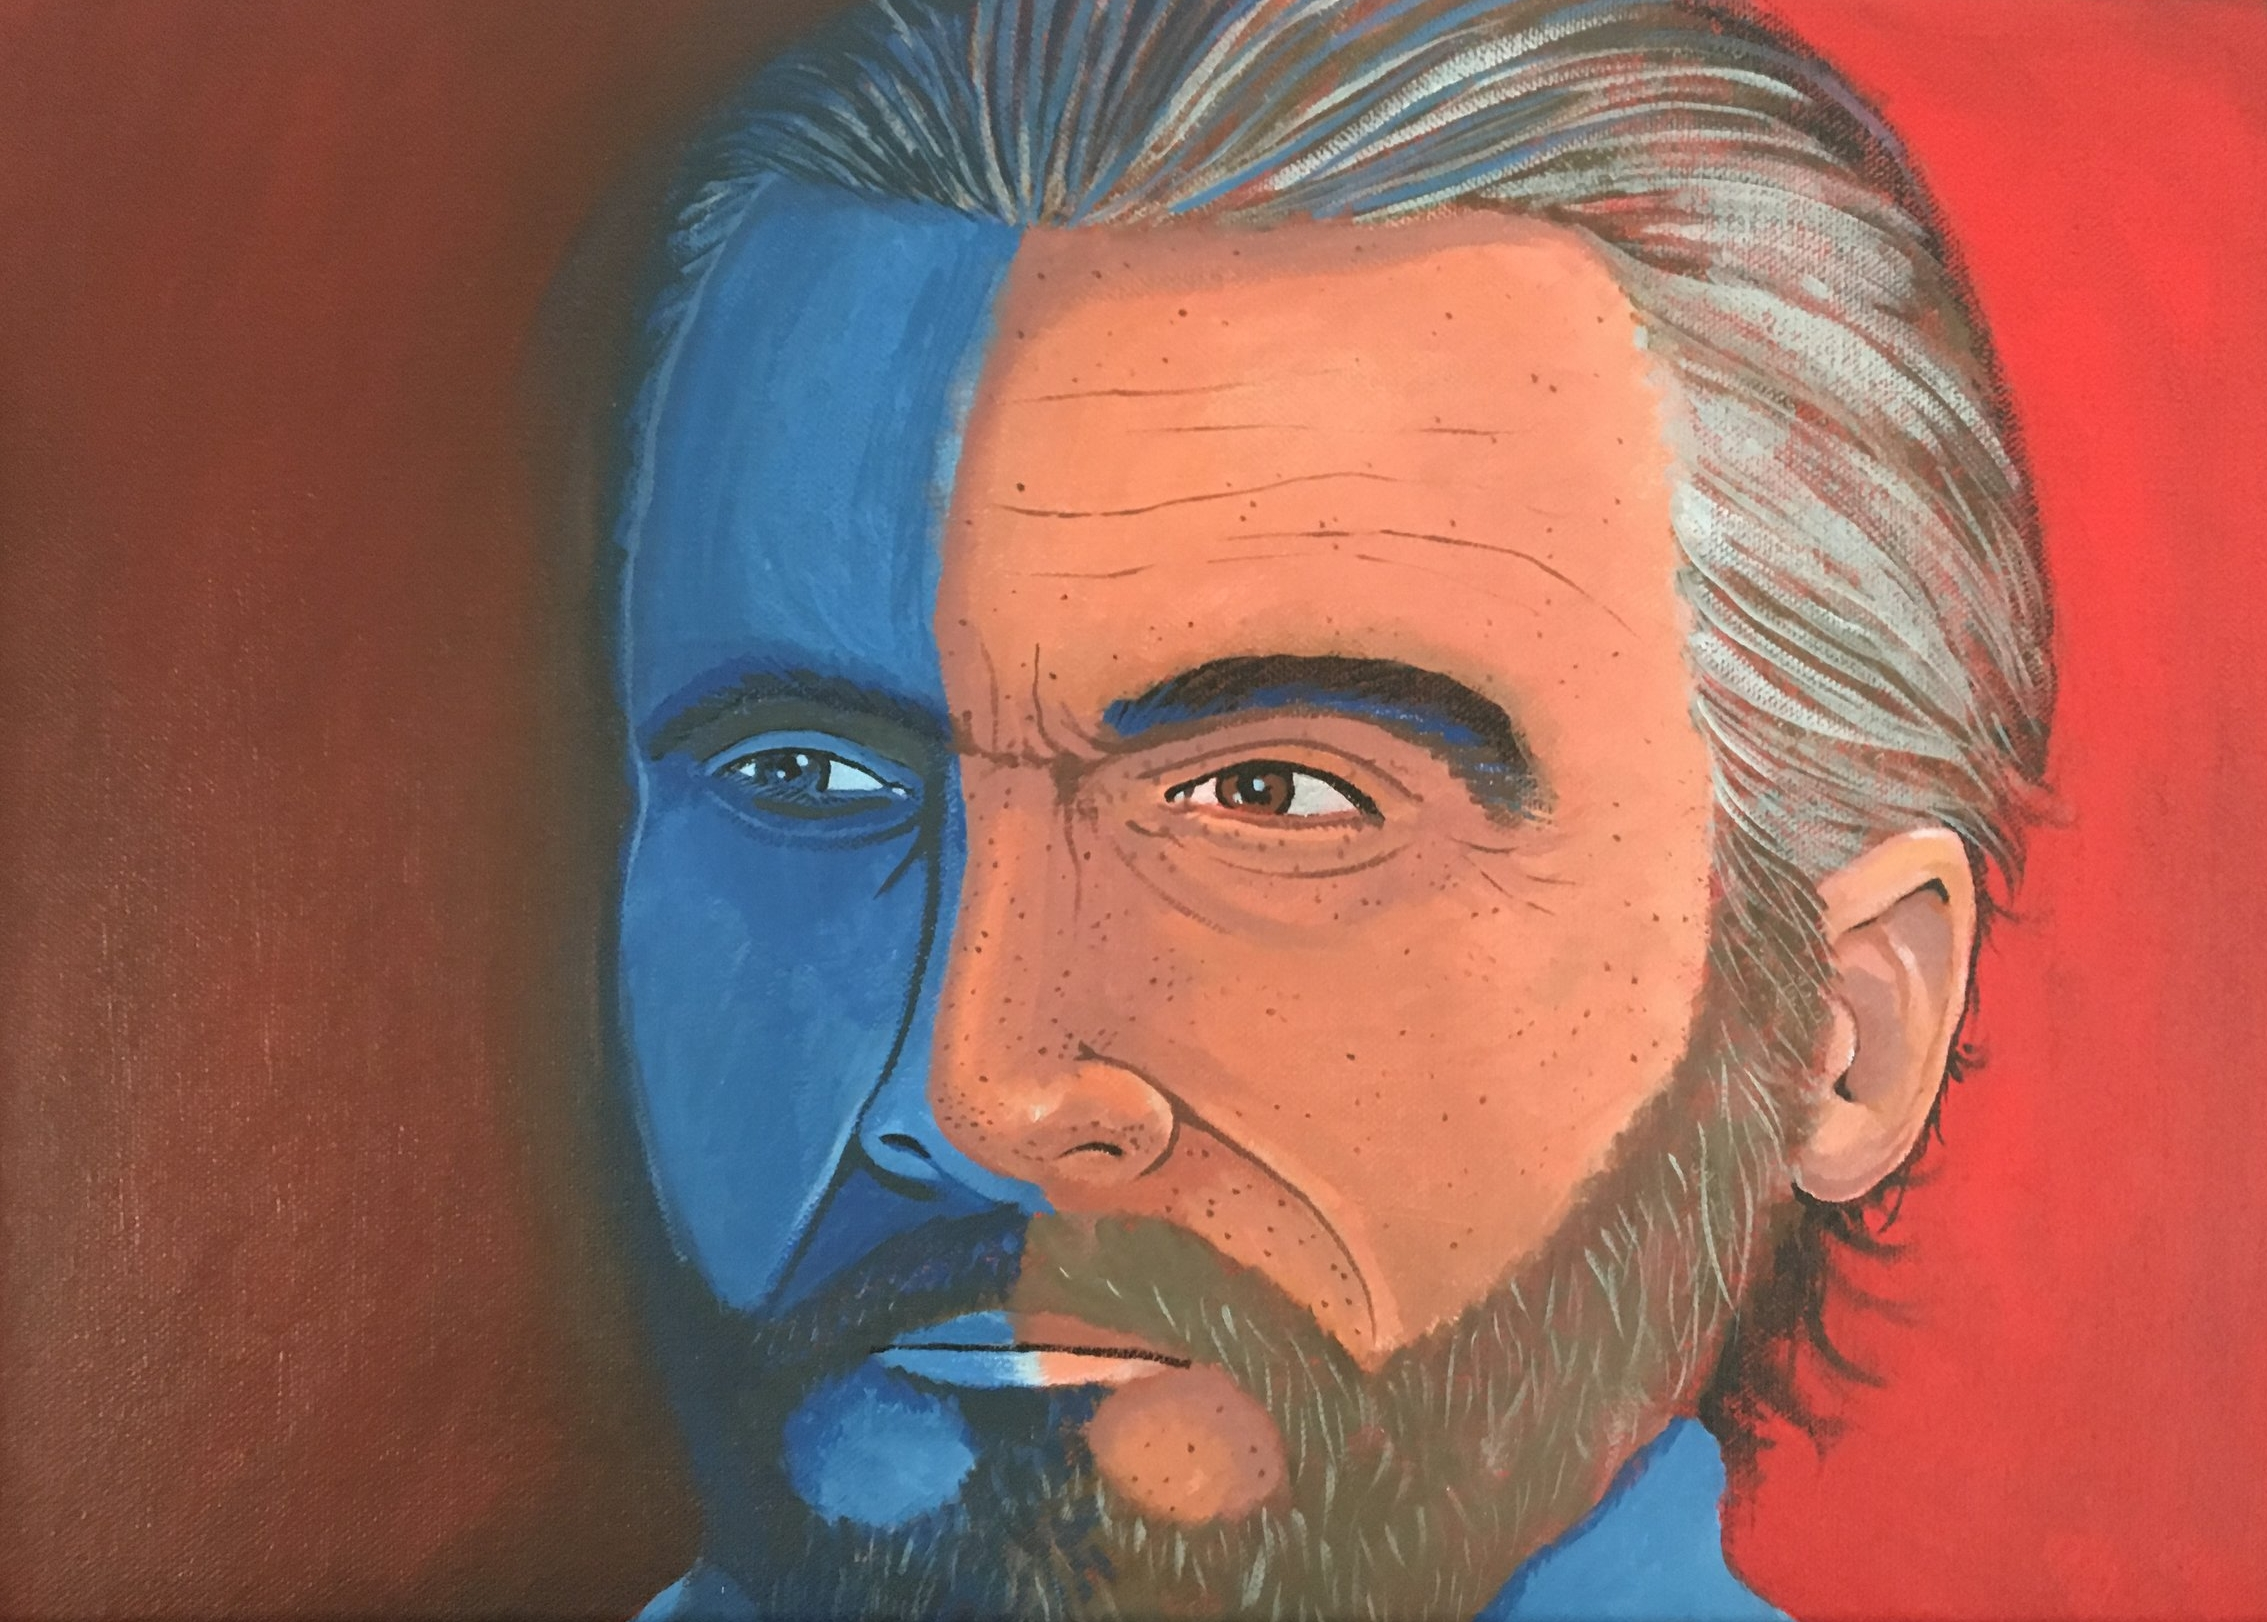 """Zamora, Gil.  Perspective painting: Self portrait.  Acrylic on canvas, 12"""" x 16"""". Private collection."""